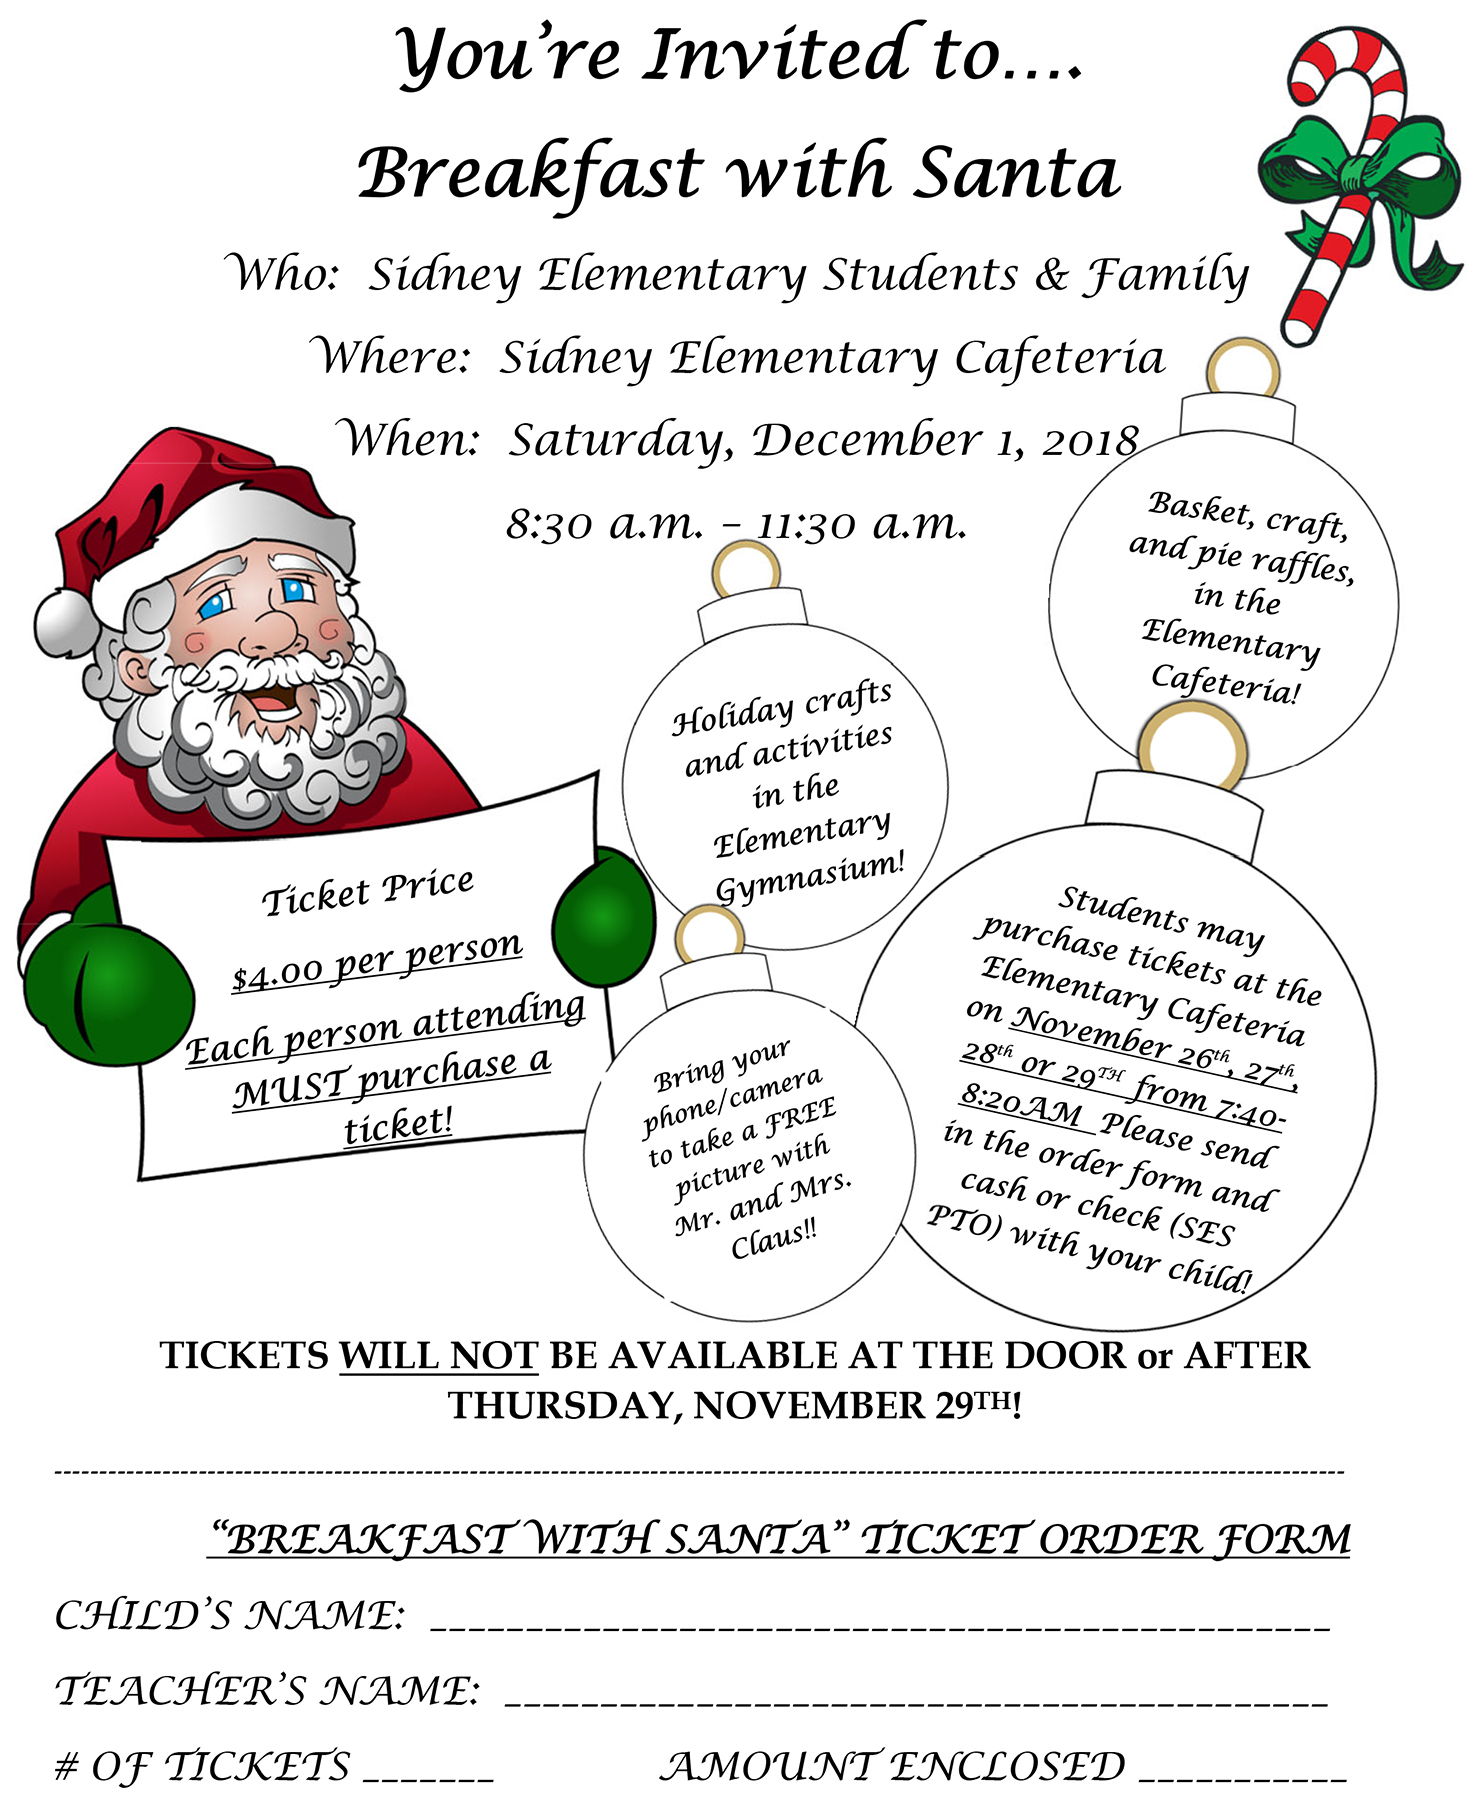 Breakfast with Santa flyer 2018